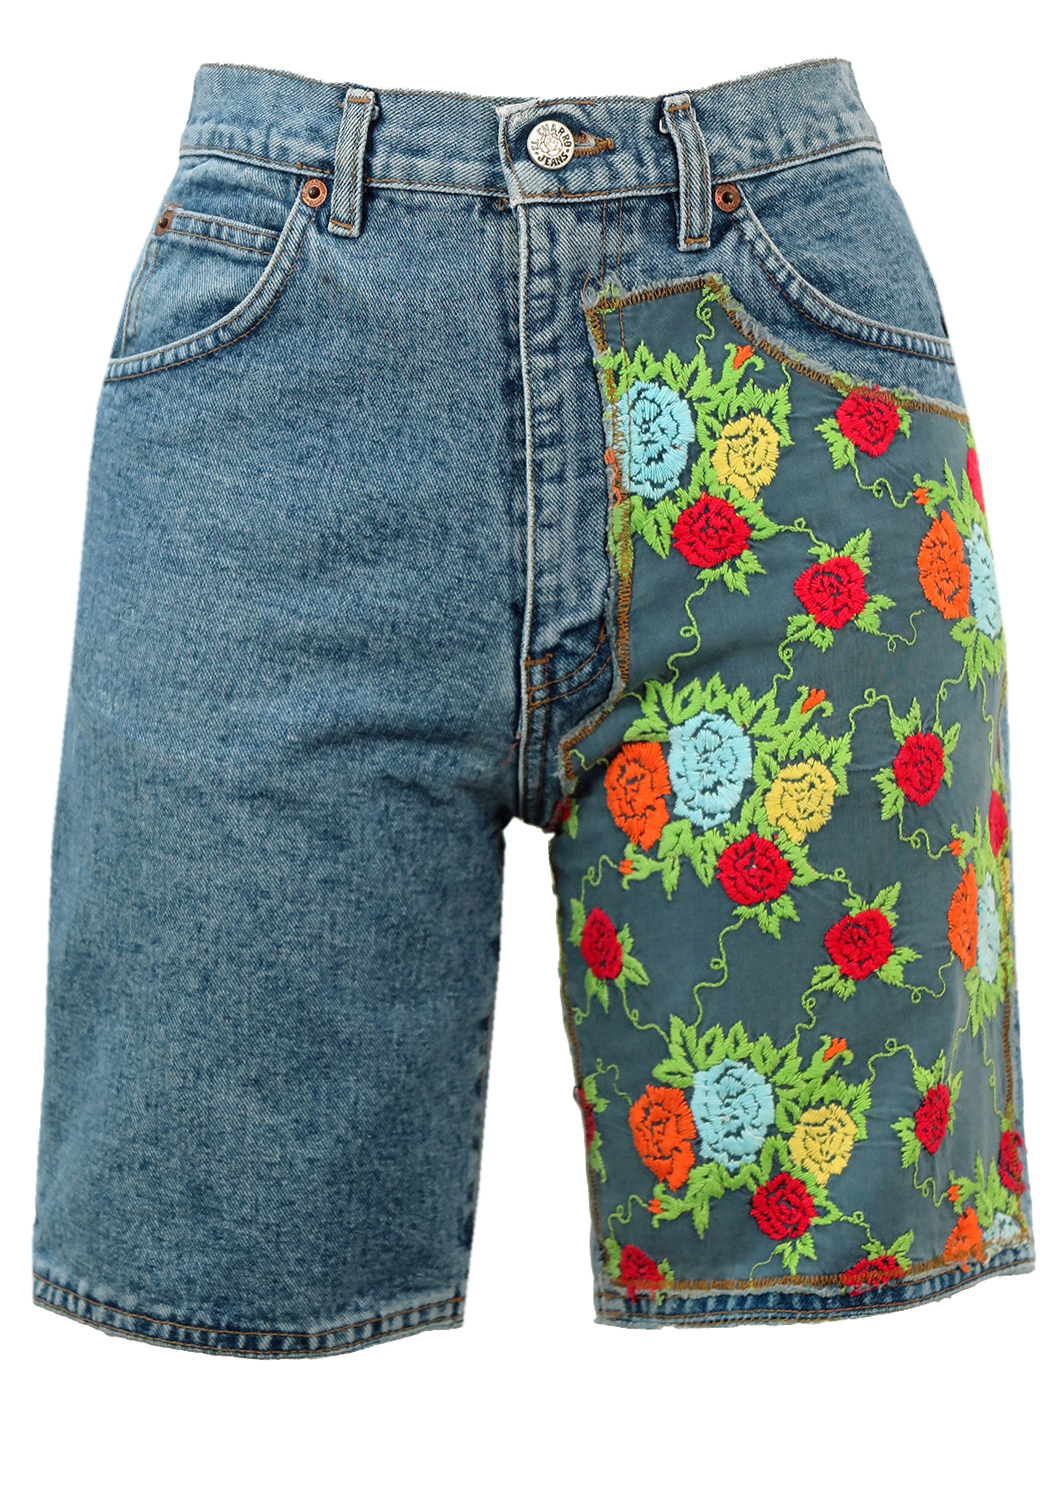 Find mens embroidered shorts at ShopStyle. Shop the latest collection of mens embroidered shorts from the most popular stores - all in one place.